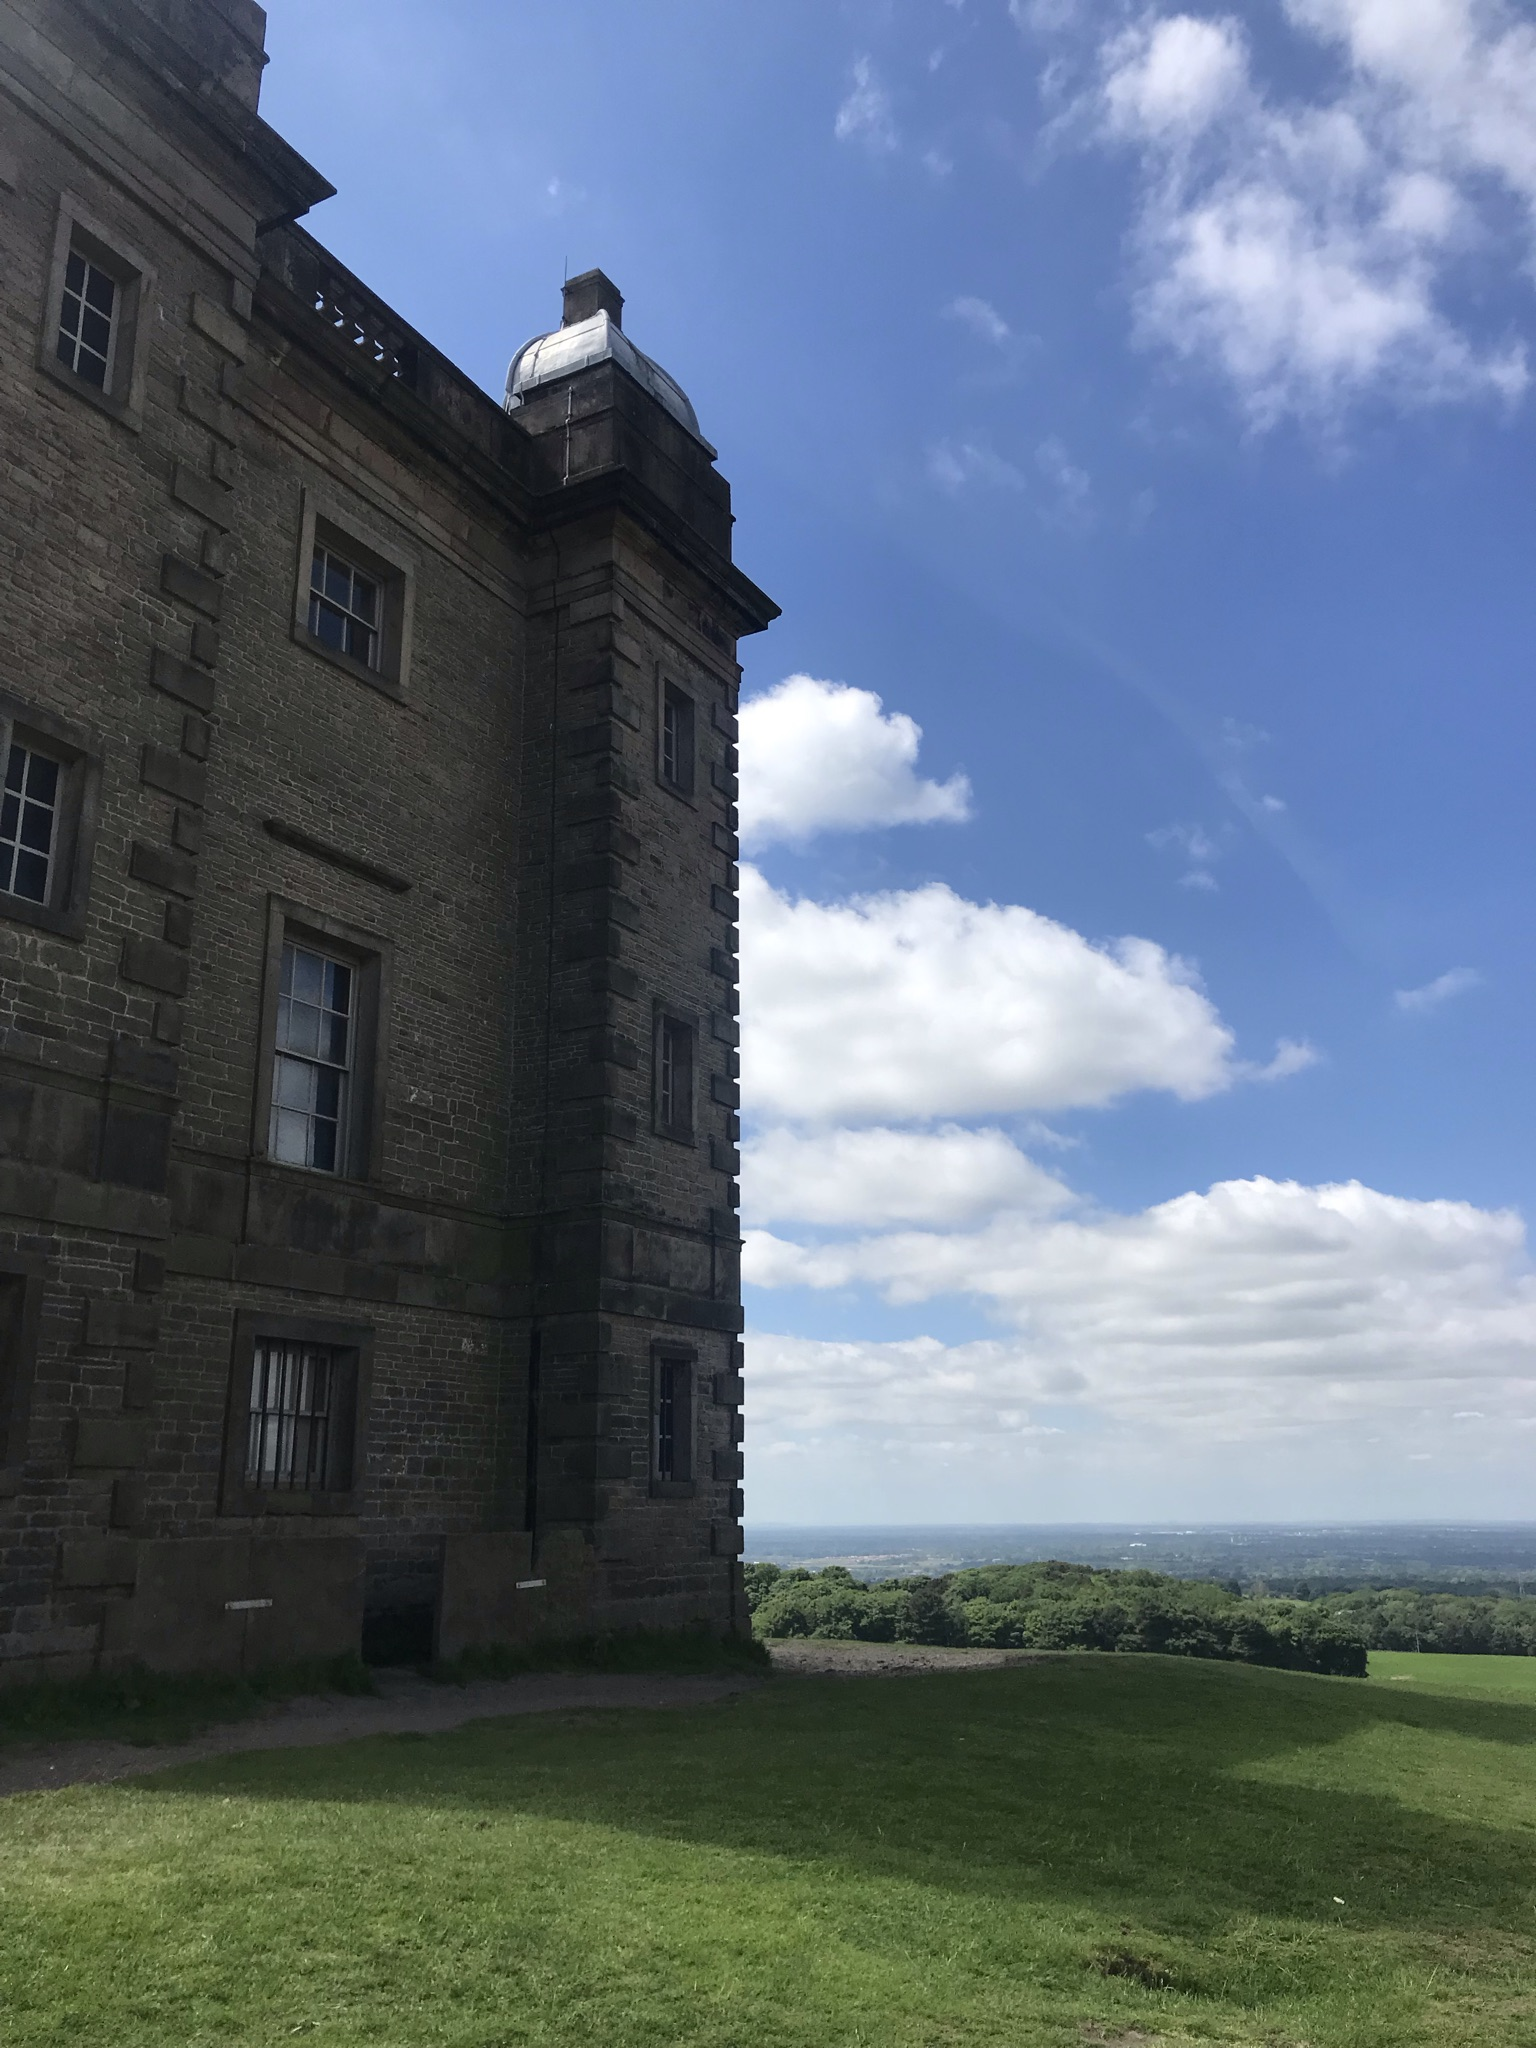 A stone 18th century three story building surrounded by short grass slopes. The sky is blue with white clouds and long views over the Cheshire plains